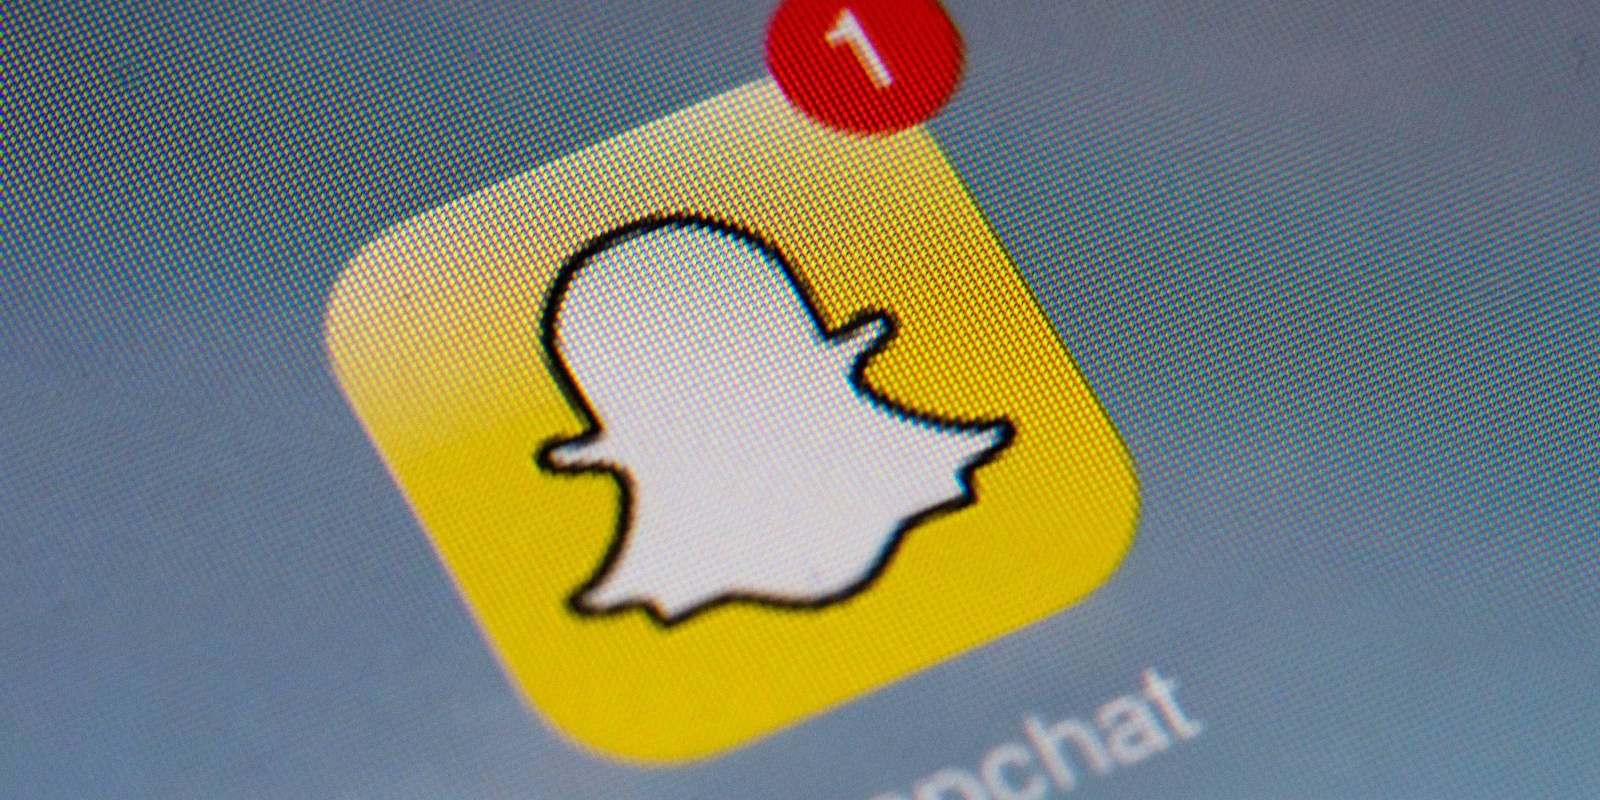 How to unlock the 5 Snapchat features you probably didn't know about  https://t.co/XNKG0bY76H https://t.co/csPNXQt5xr